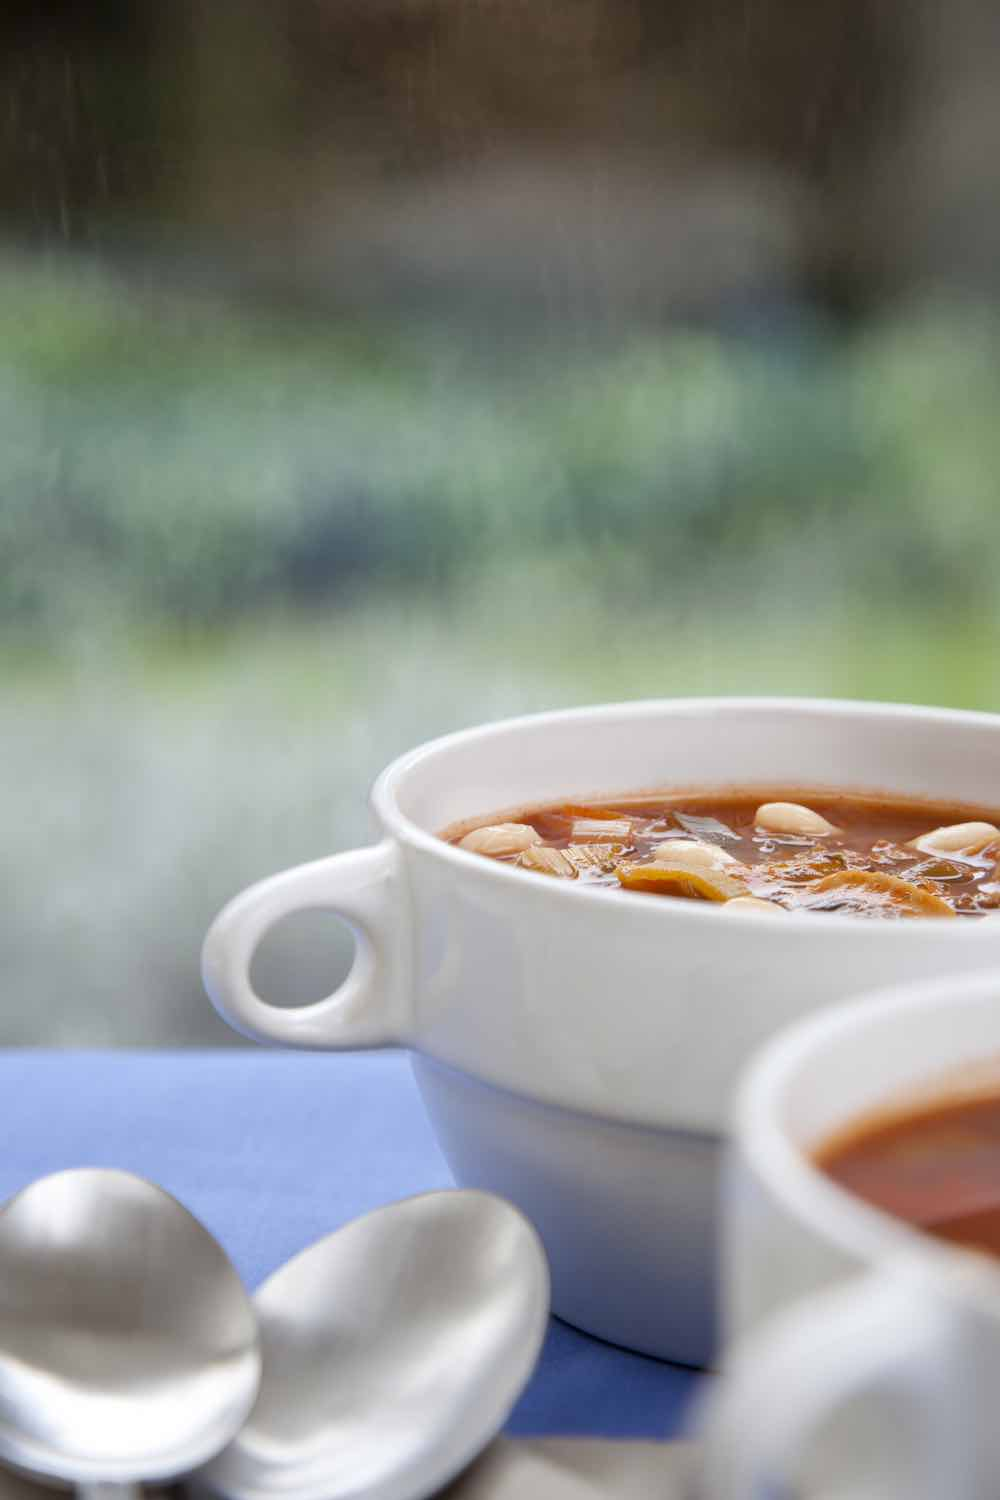 WhiteVegetarian White Bean Chili with Chocolate in a white bowl on a blue tablecloth